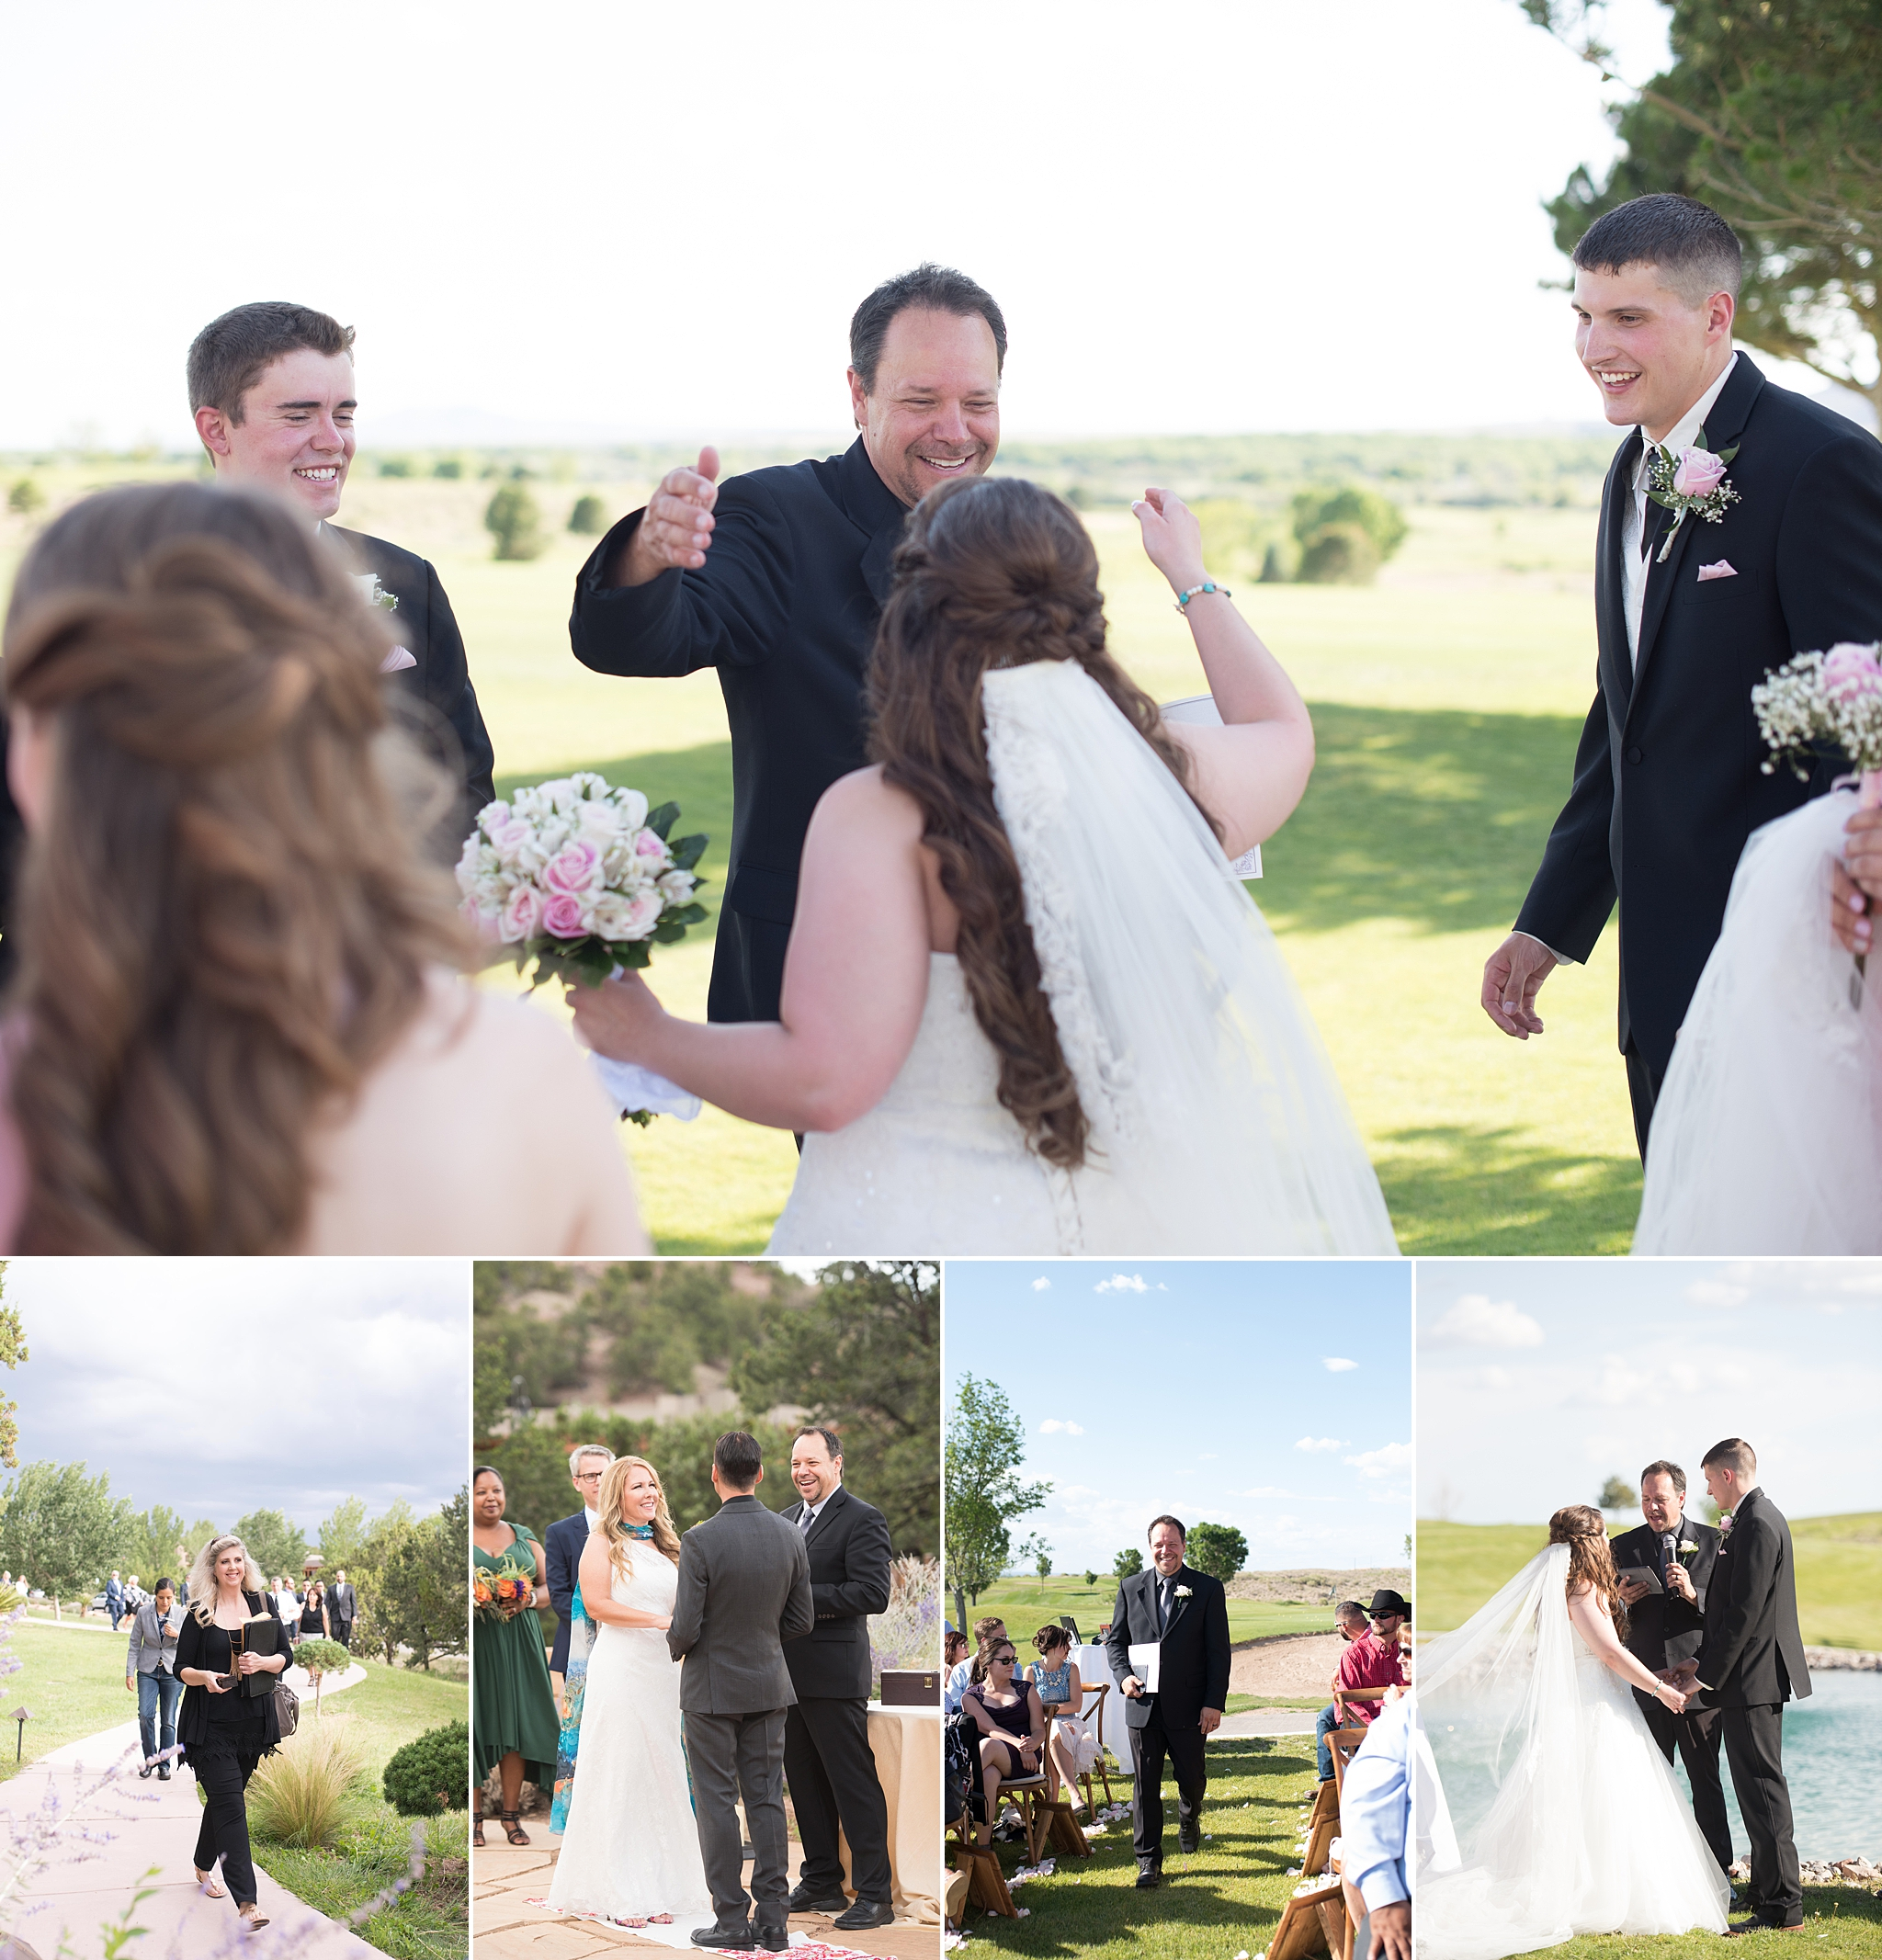 Blog post by Kayla Kitts Photography. Officiant Paul of De Novo Pastoral leads ceremonies at Isleta Resort outside of Albuququerque New Mexico, and at Four Seasons in Santa Fe, New Mexico. A blog about why he does a wonderful job on weddings days and beyond, and is one of the top vendors in Albuquerque, Santa Fe, and all of New Mexico.